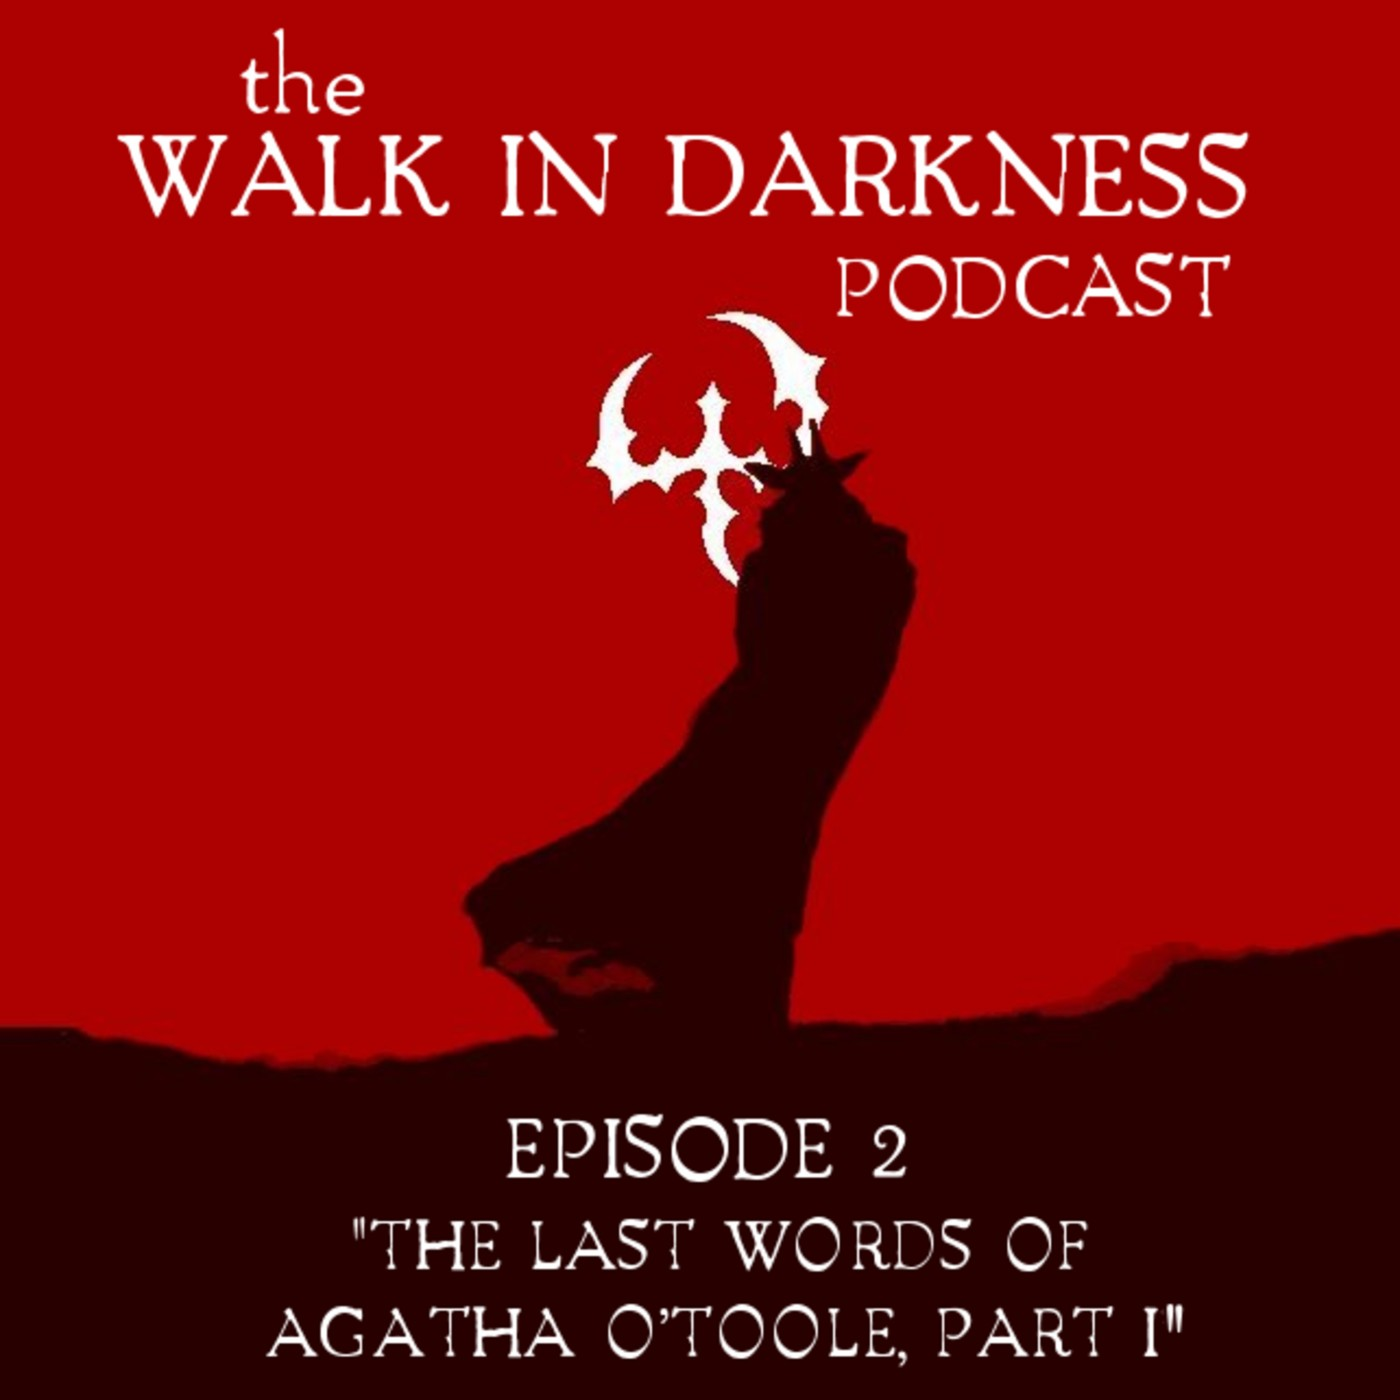 The Last Words of Agatha O'Toole, Part 1 (Episode 2)